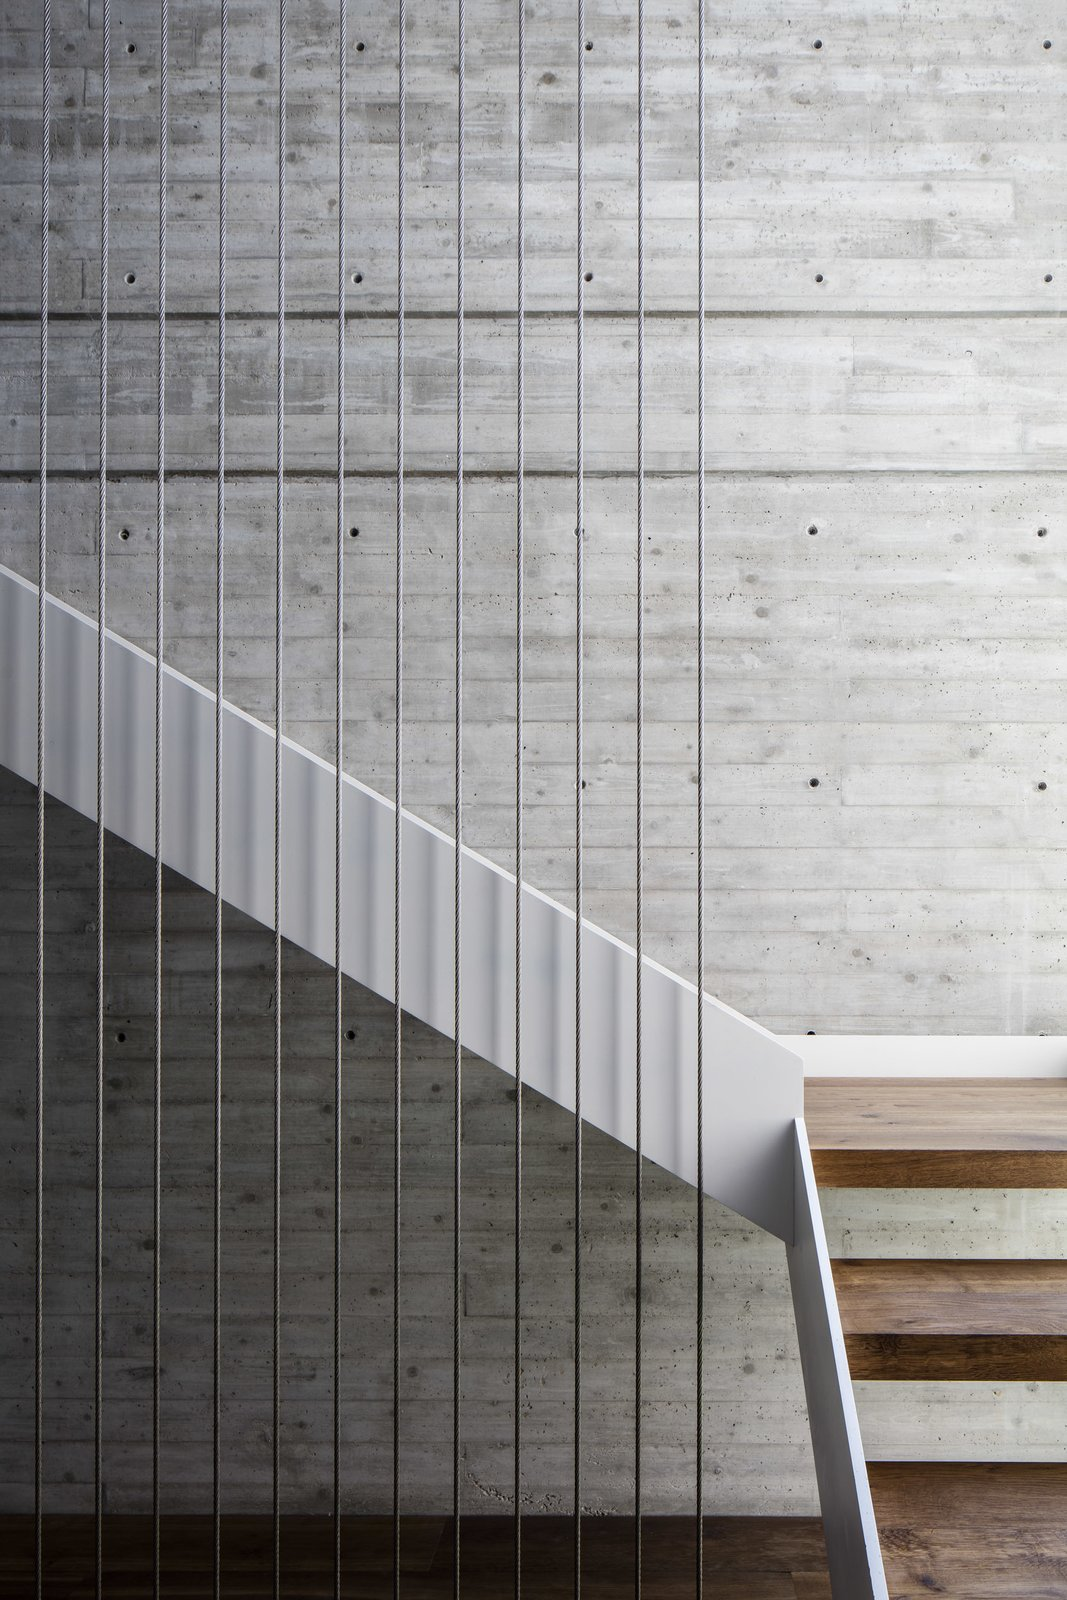 The staircase provides a central, vertical axis between the upper and lower levels.  The Dual House by Axelrod Architects